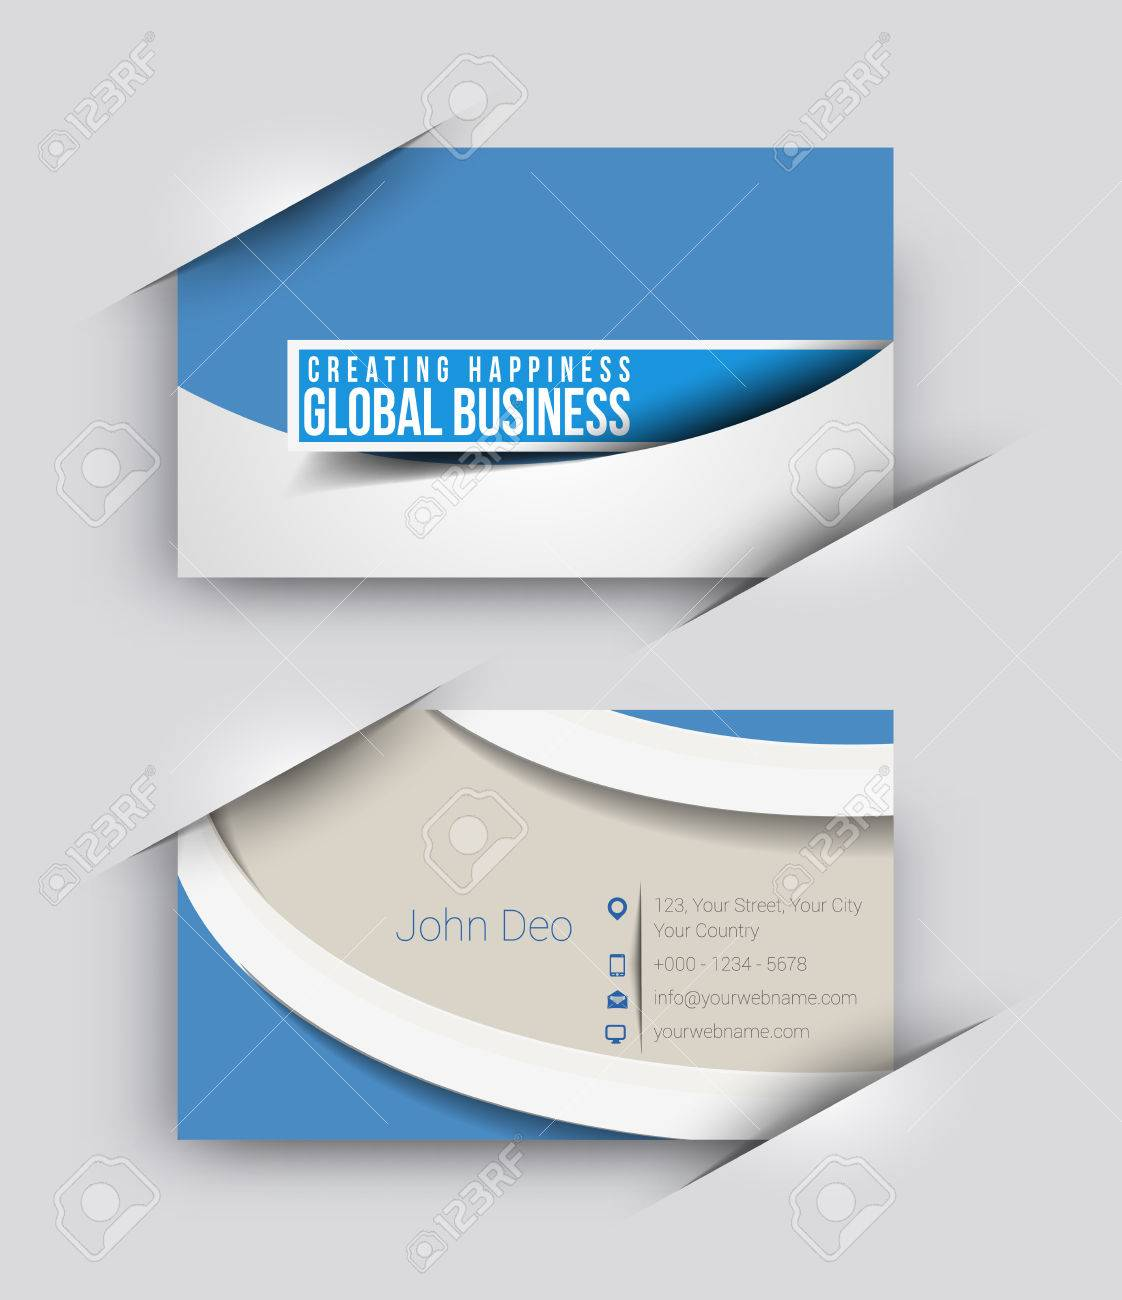 Modern Business Card Vector Template. Royalty Free Cliparts, Vectors ...